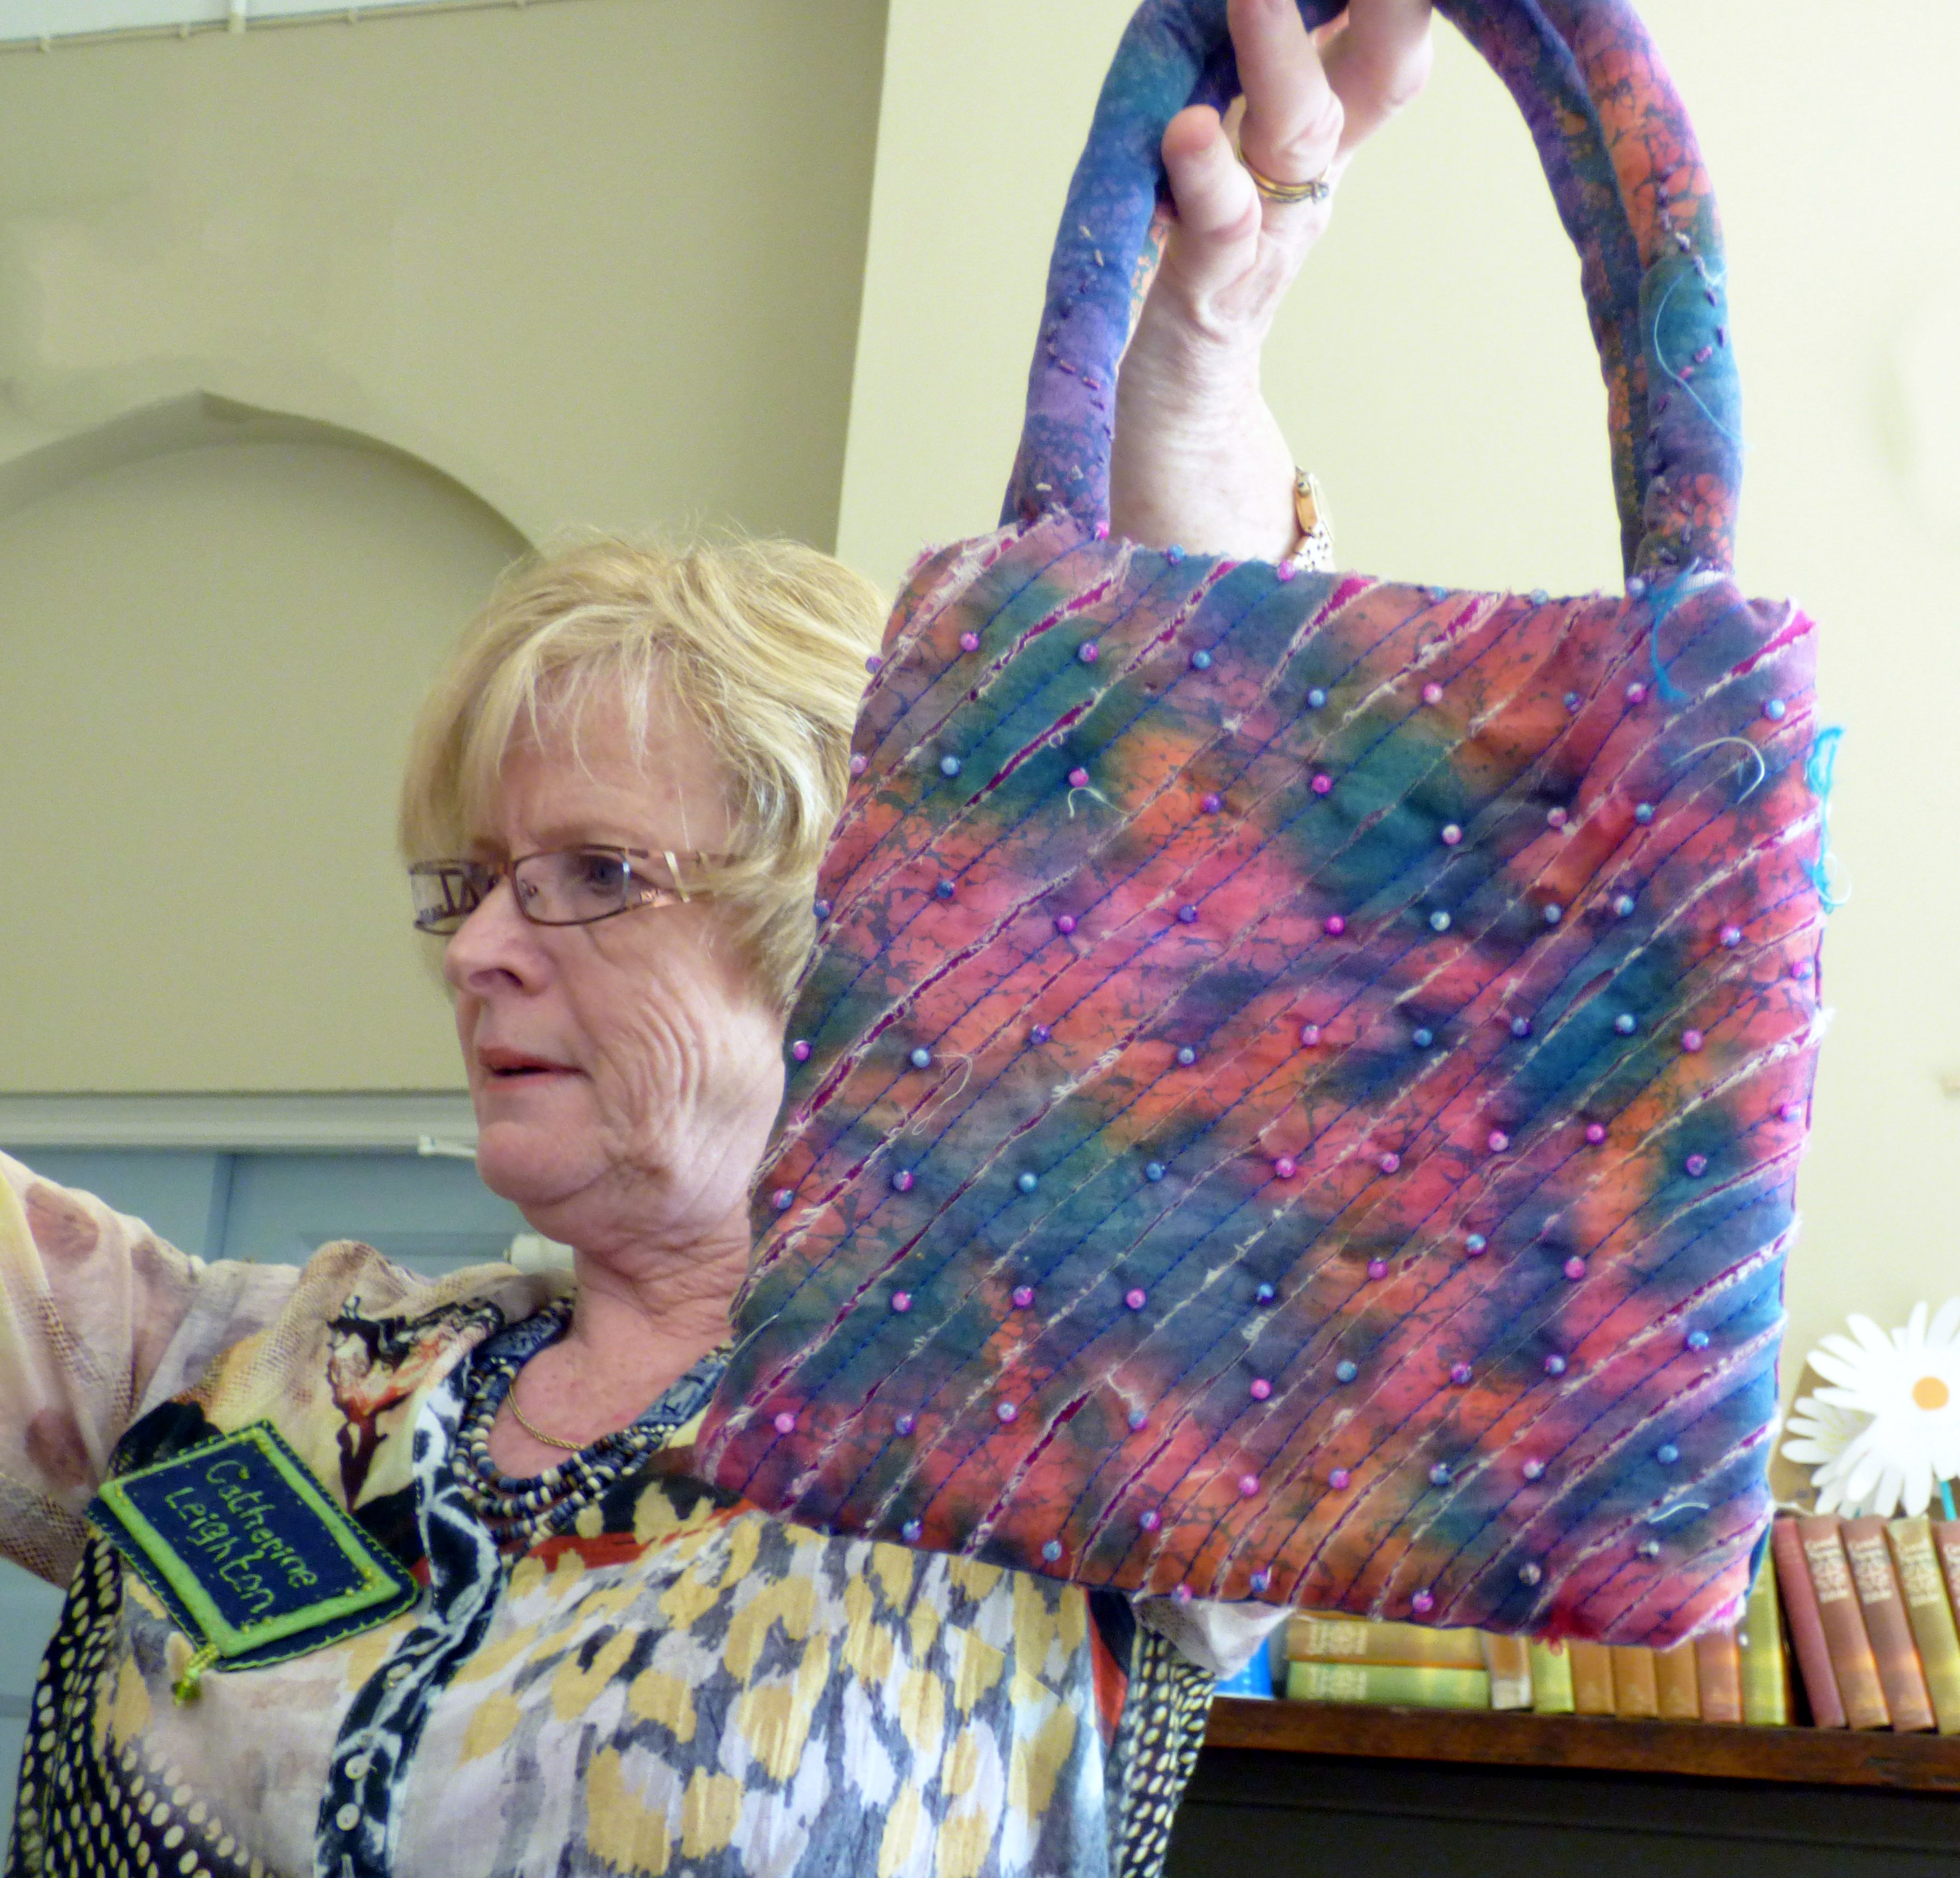 BAG by Catherine Leighton using African textiles